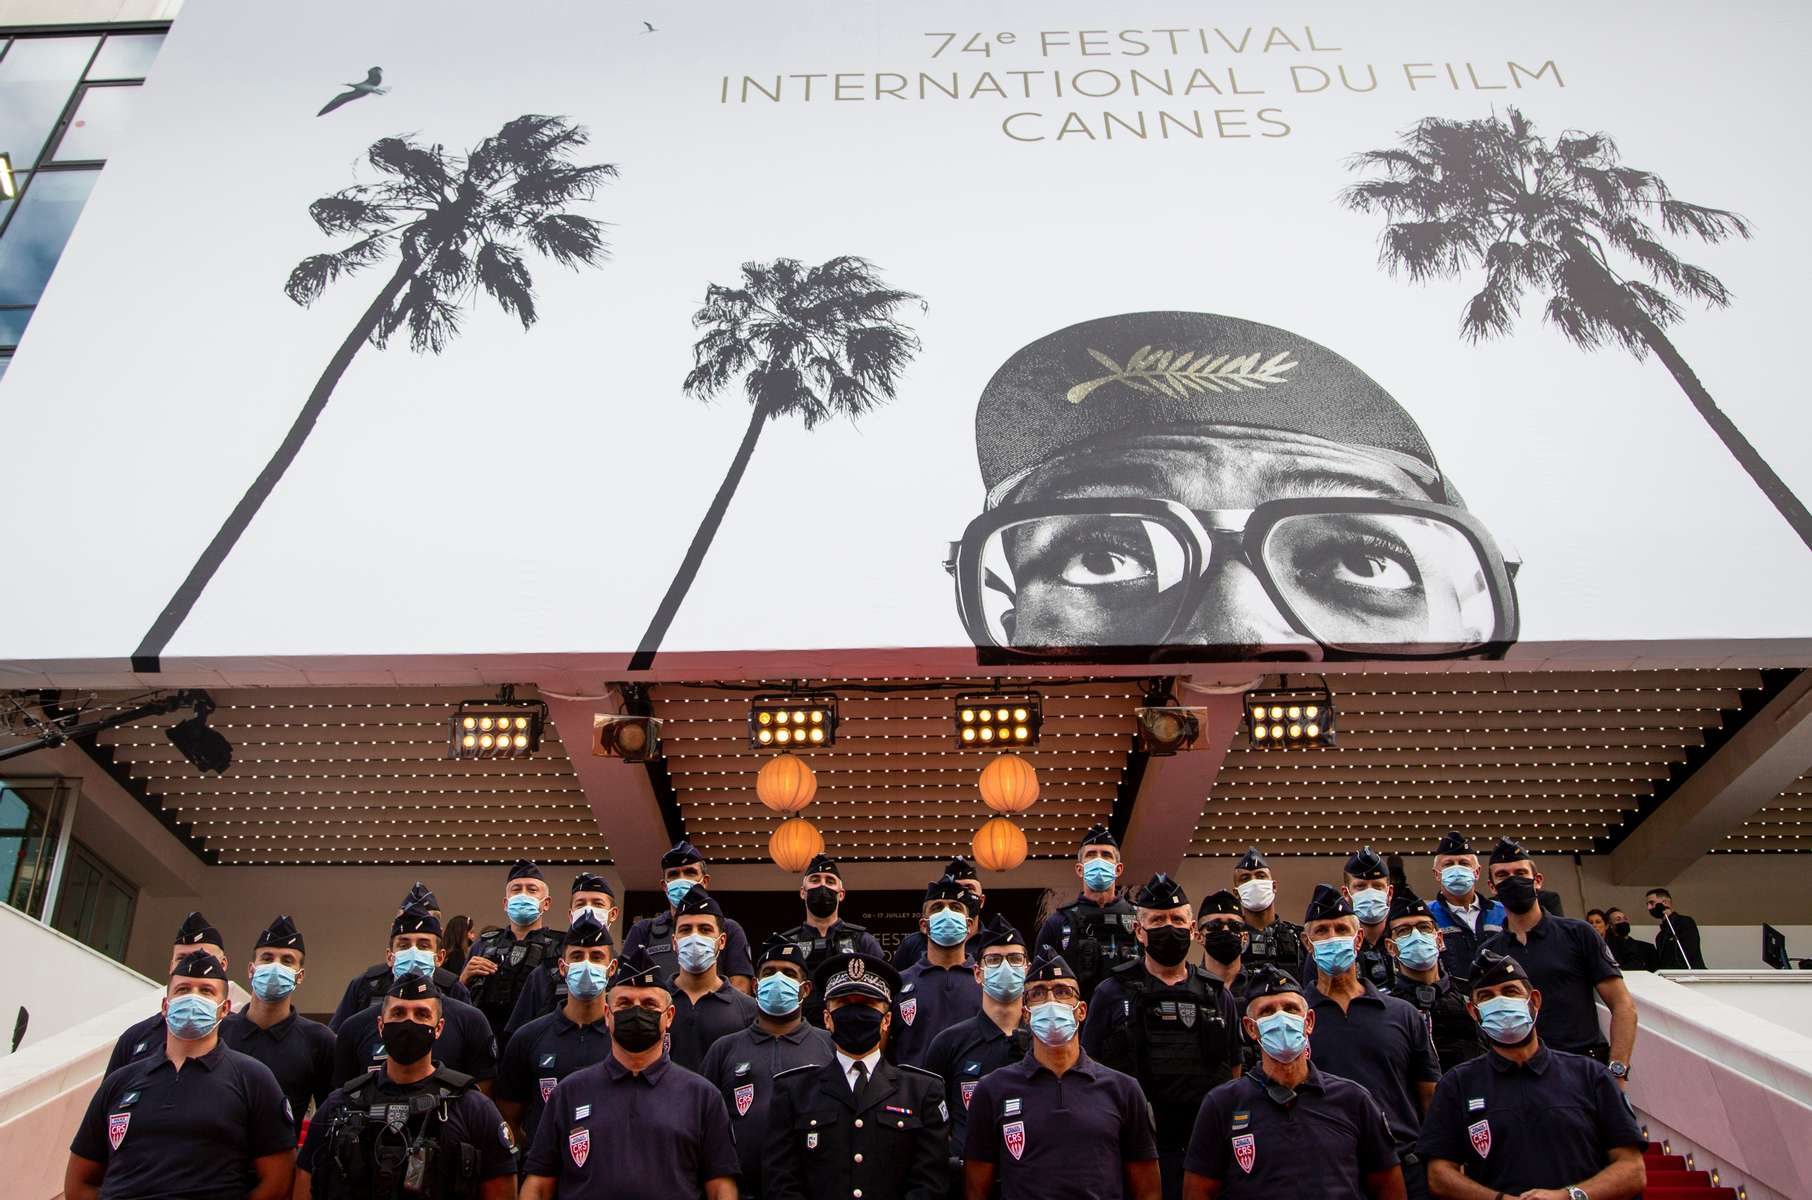 Policemen pose for a picture on the red carpet at the 74th annual Cannes Film Festival in Cannes, France on July 16, 2021.